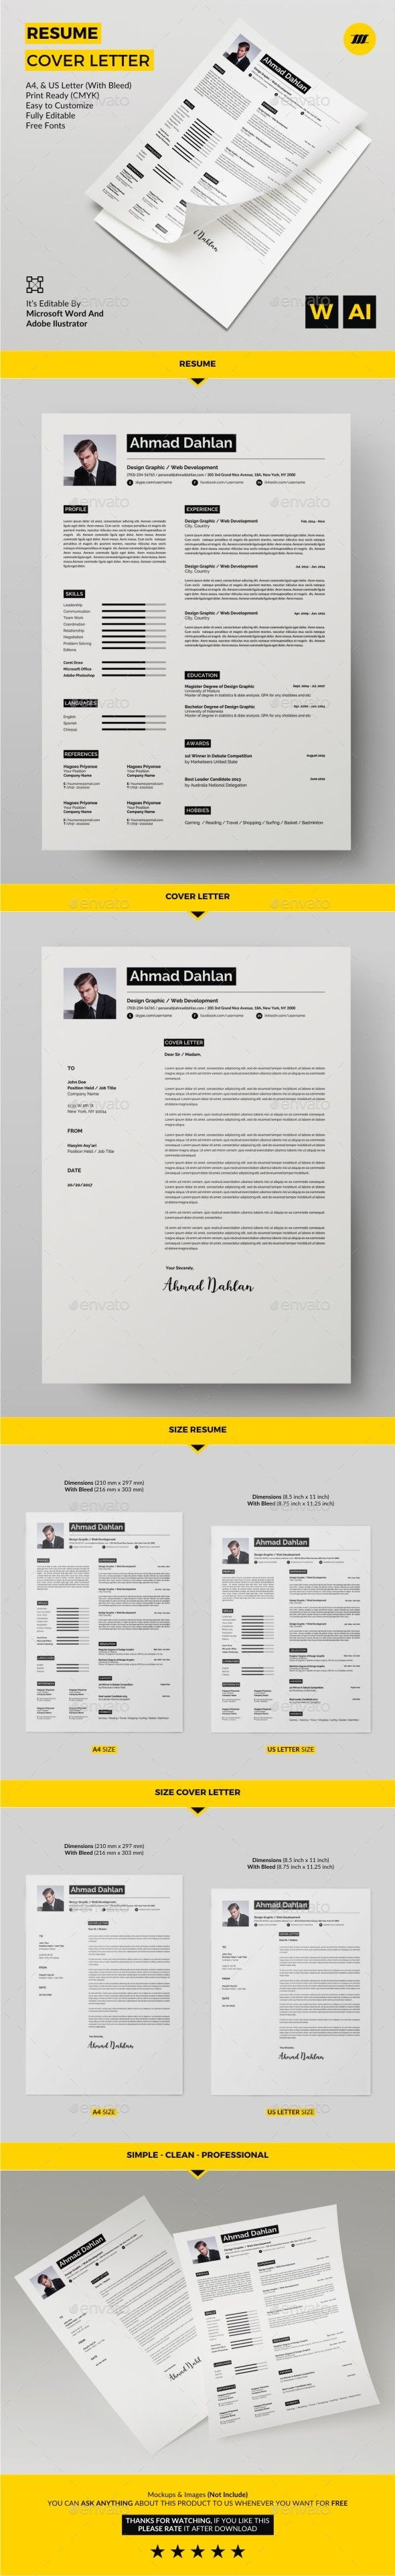 Simple Resume Exampleprin 92 Best Currículo Images On Pinterest  Resume Design Curriculum .